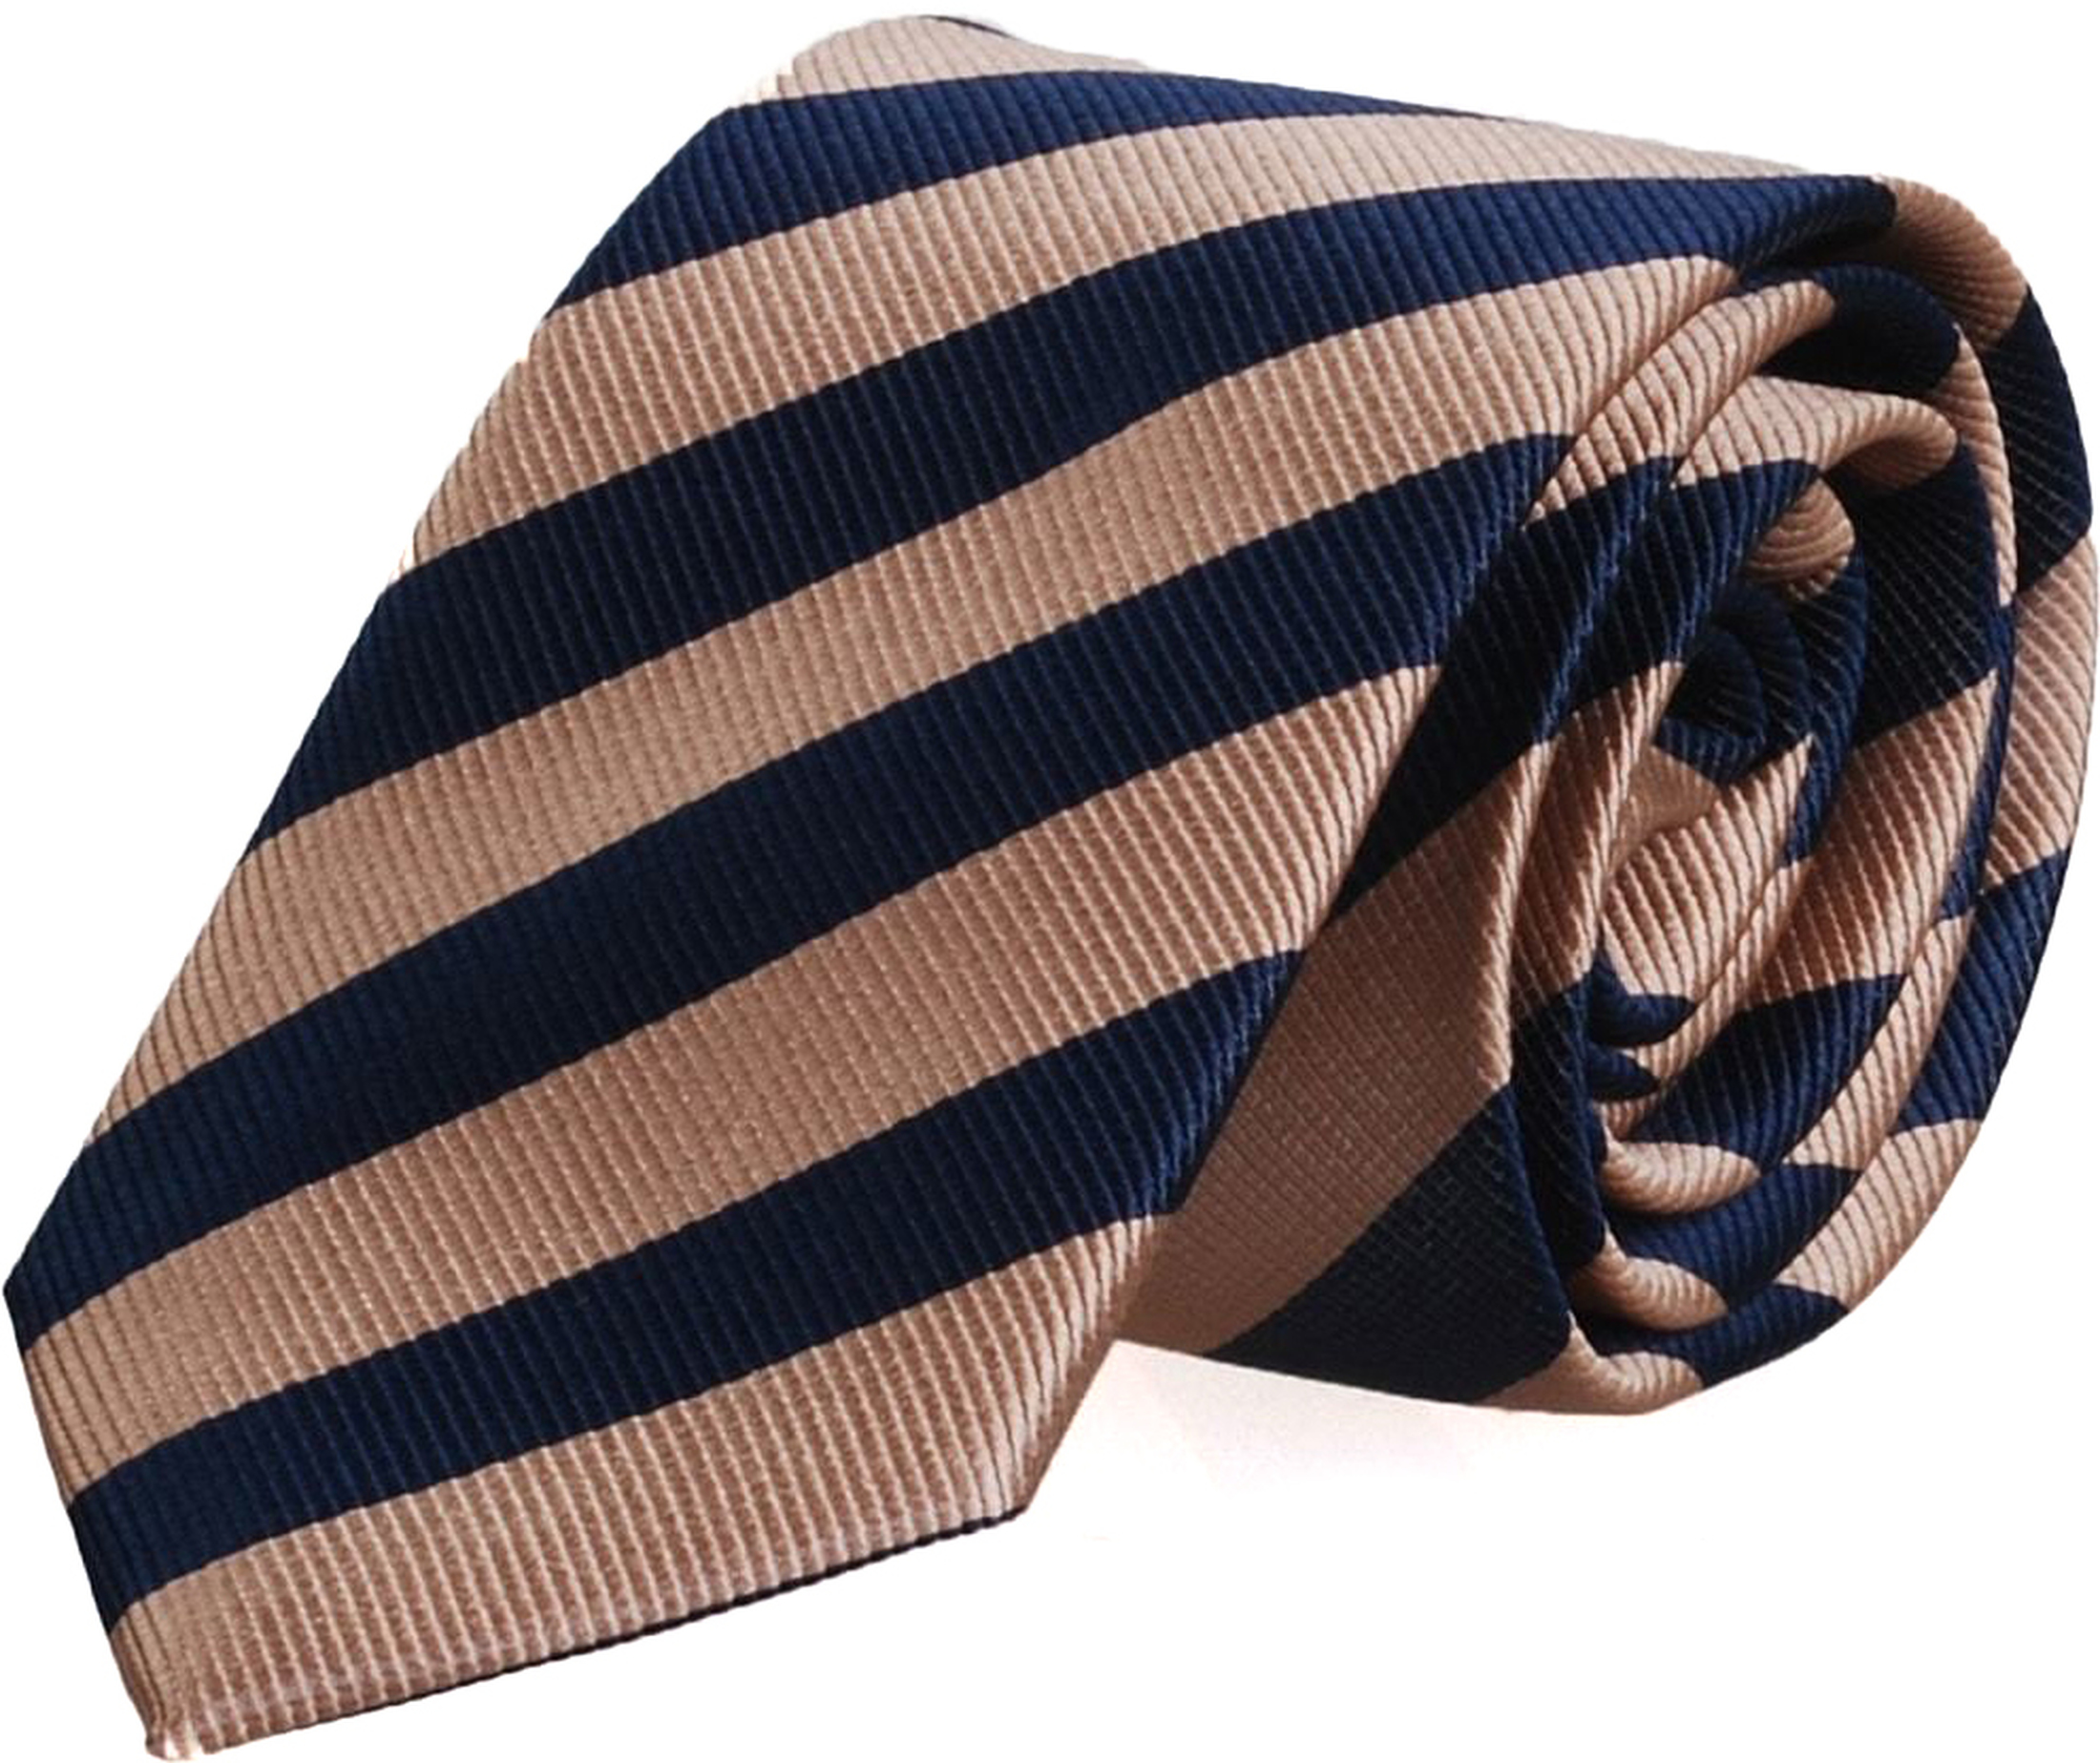 Silk Tie Khaki + Navy Striped FD15